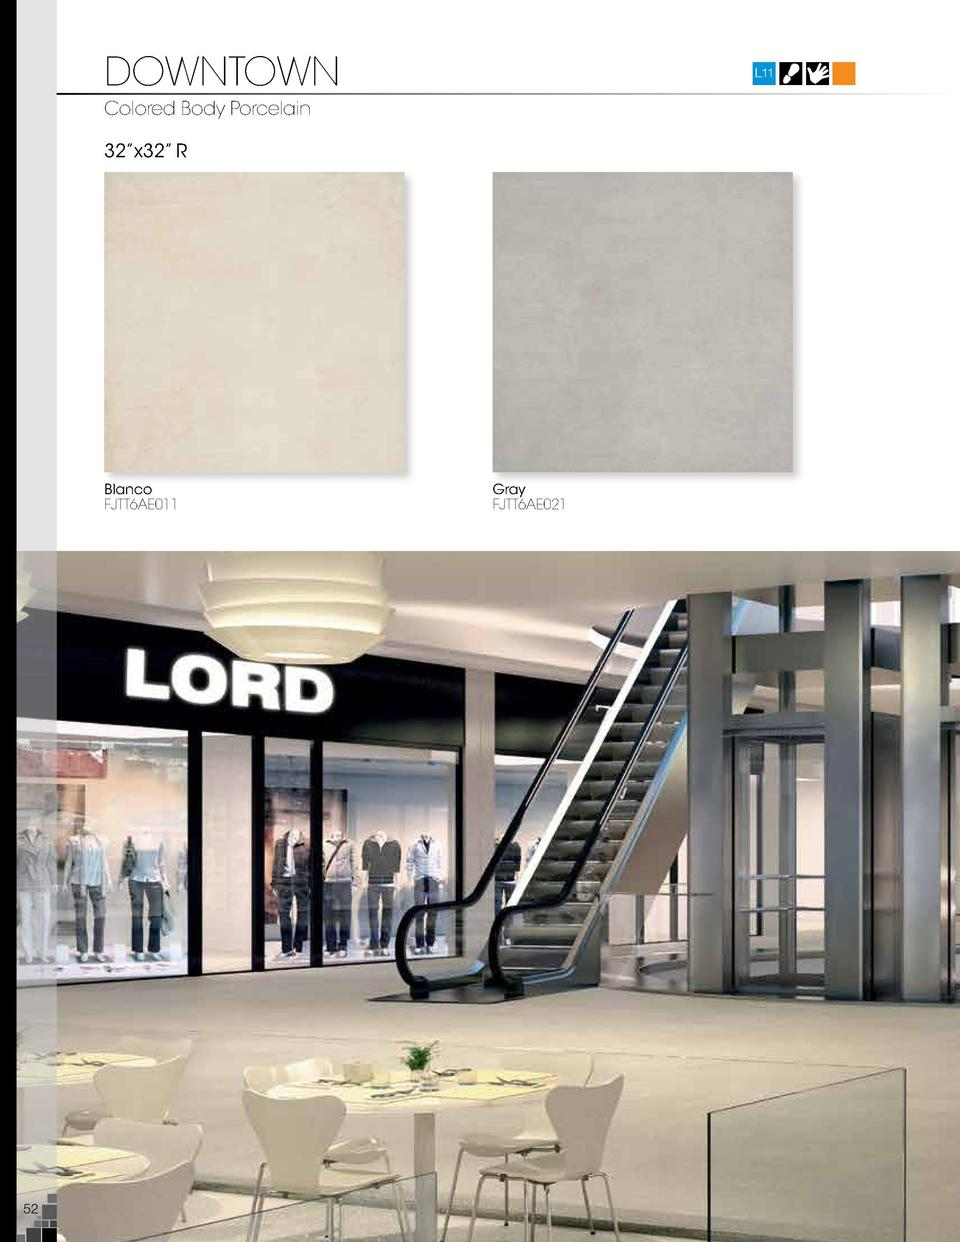 DOWNTOWN  L11  Colored Body Porcelain 32   x32    R  Blanco FJTT6AE011  Gray FJTT6AE021  Marengo FJTT6AE031  Downtown Blan...